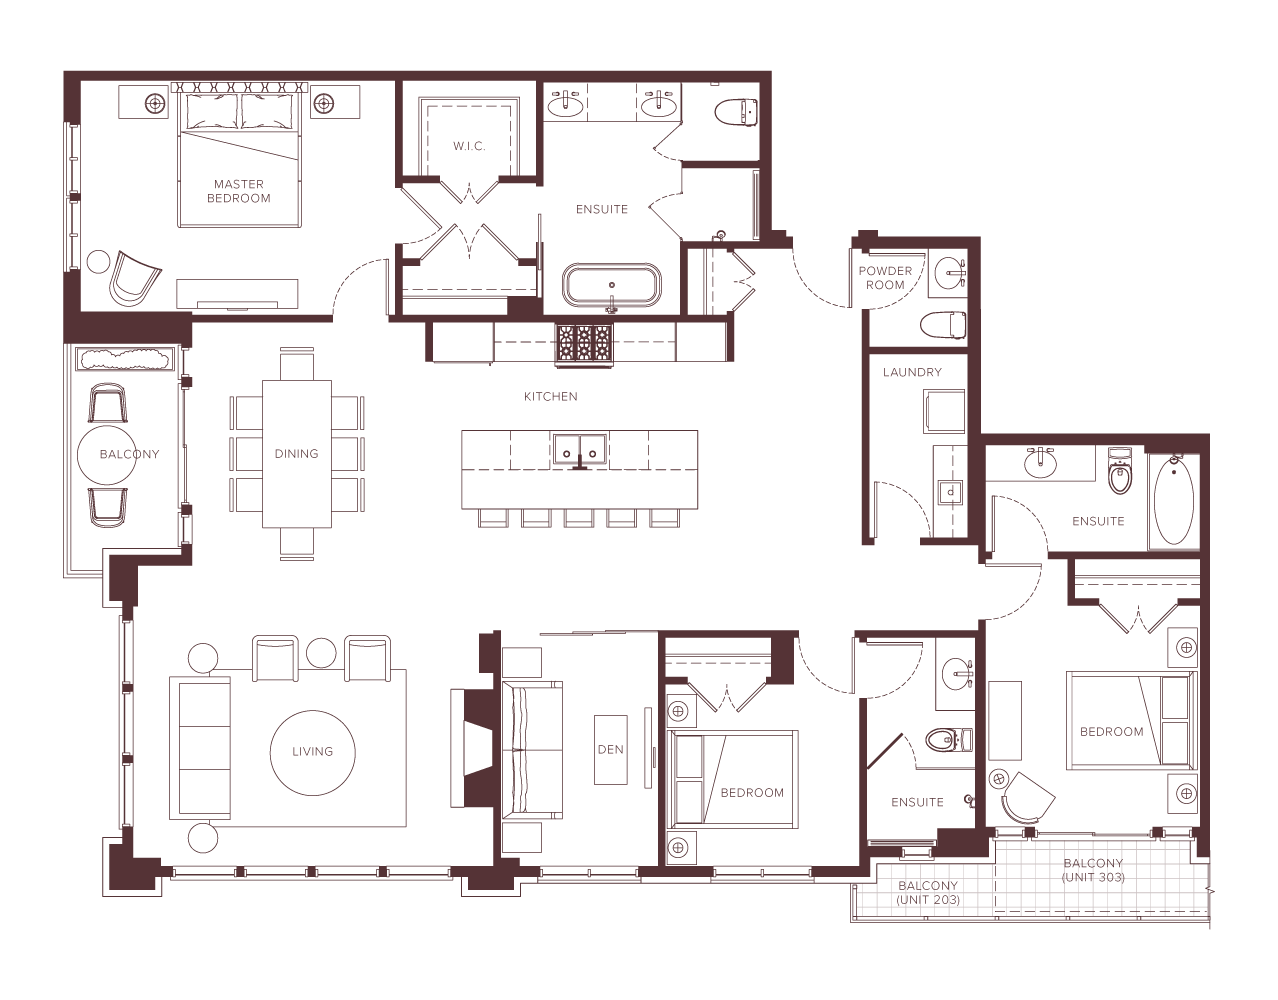 Chateau Laurier 3-bedroom floorplan.